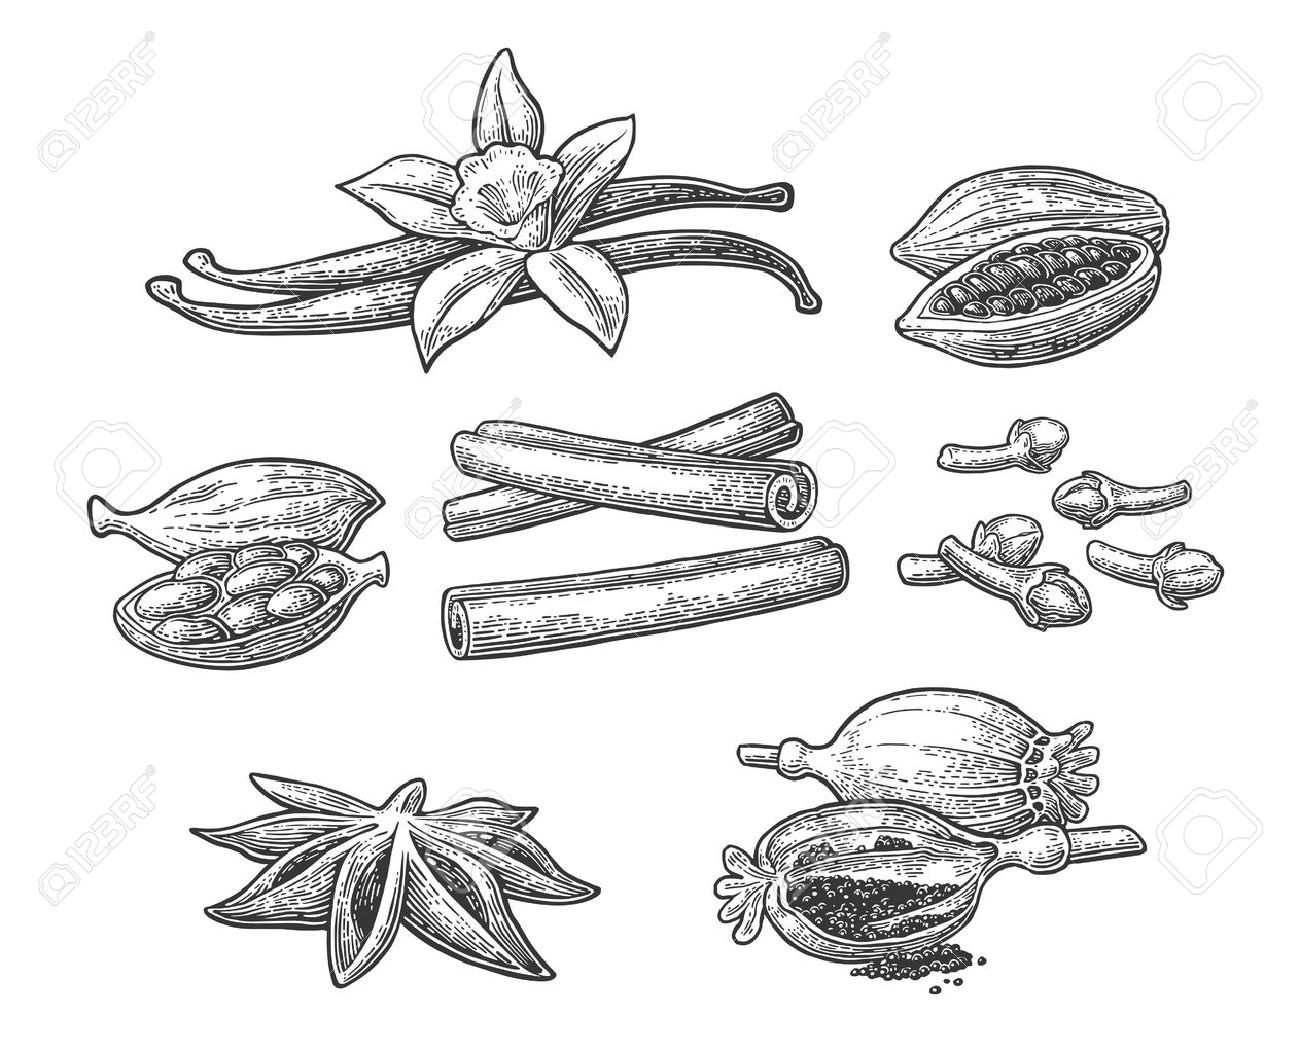 Set of spices. Anise star, cardamom, clove, cinnamon stick, fruits of cocoa beans, vanilla stick and flower, poppy heads and seeds. Isolated on white background. Vector black vintage engraving illustration. - 68479793